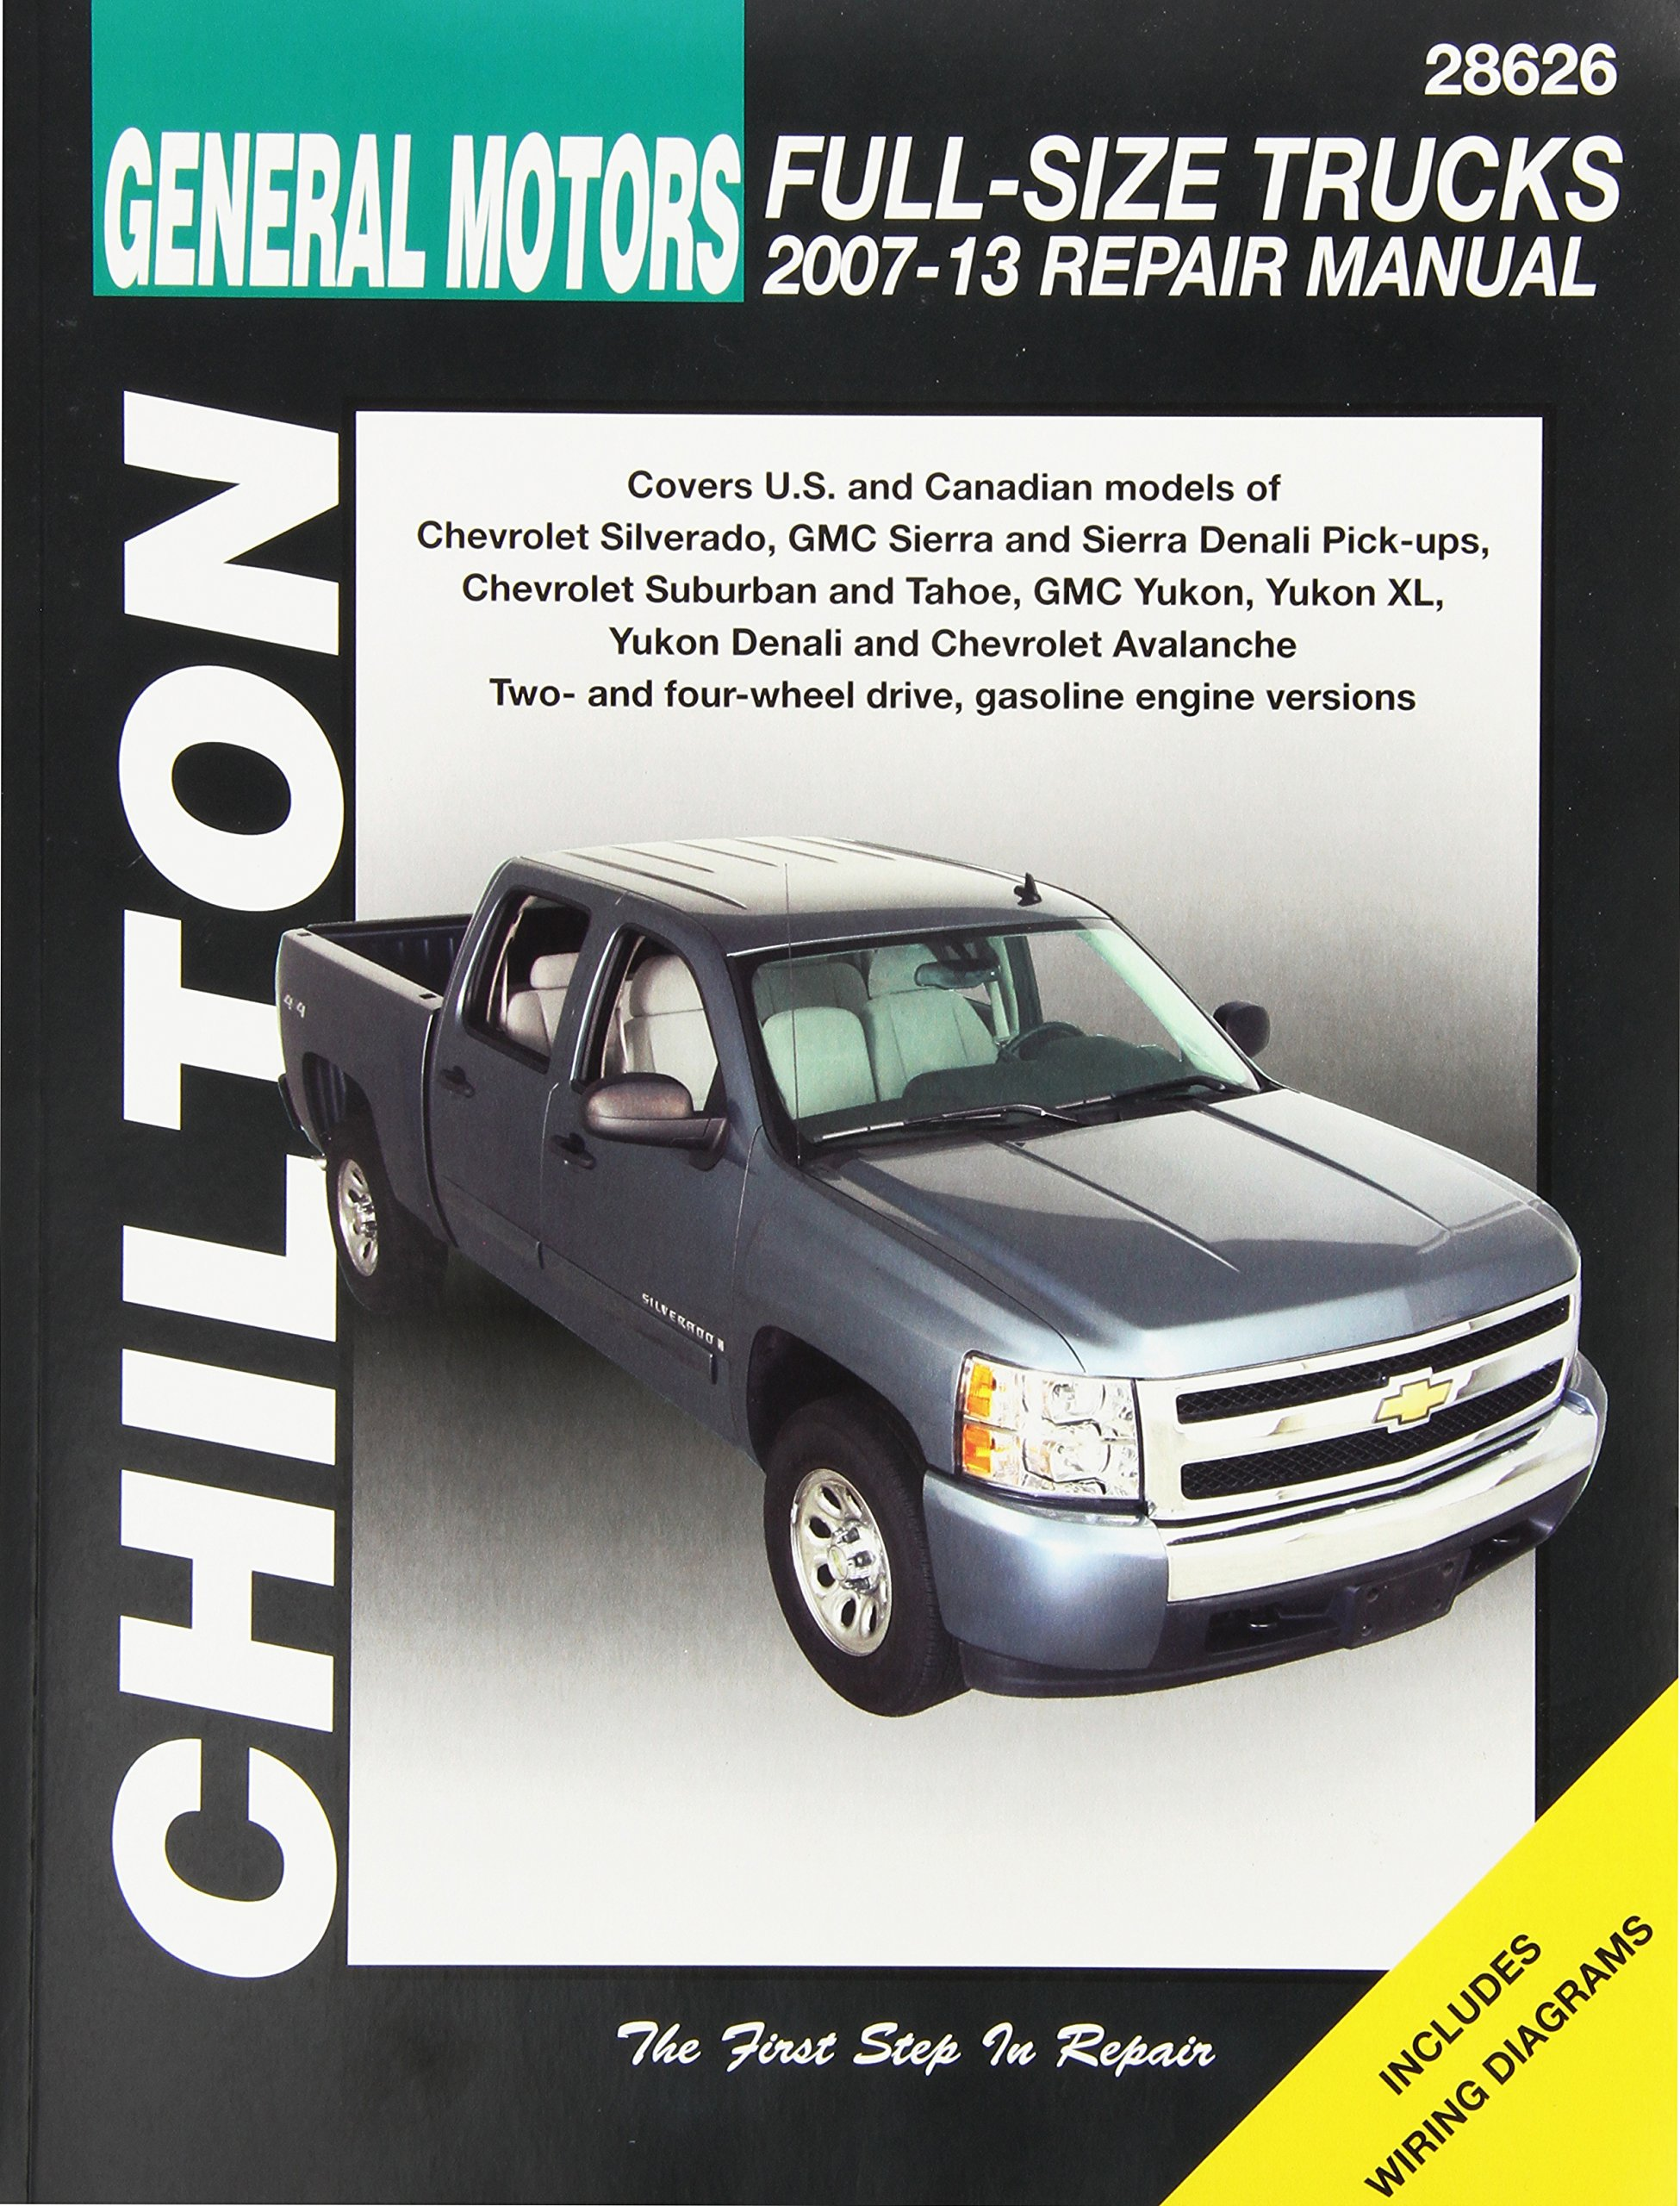 2002 gmc yukon manual browse manual guides 2002 yukon denali manual daily instruction manual guides u2022 rh testingwordpress co 2002 gmc yukon repair manual free 2002 gmc yukon repair manual fandeluxe